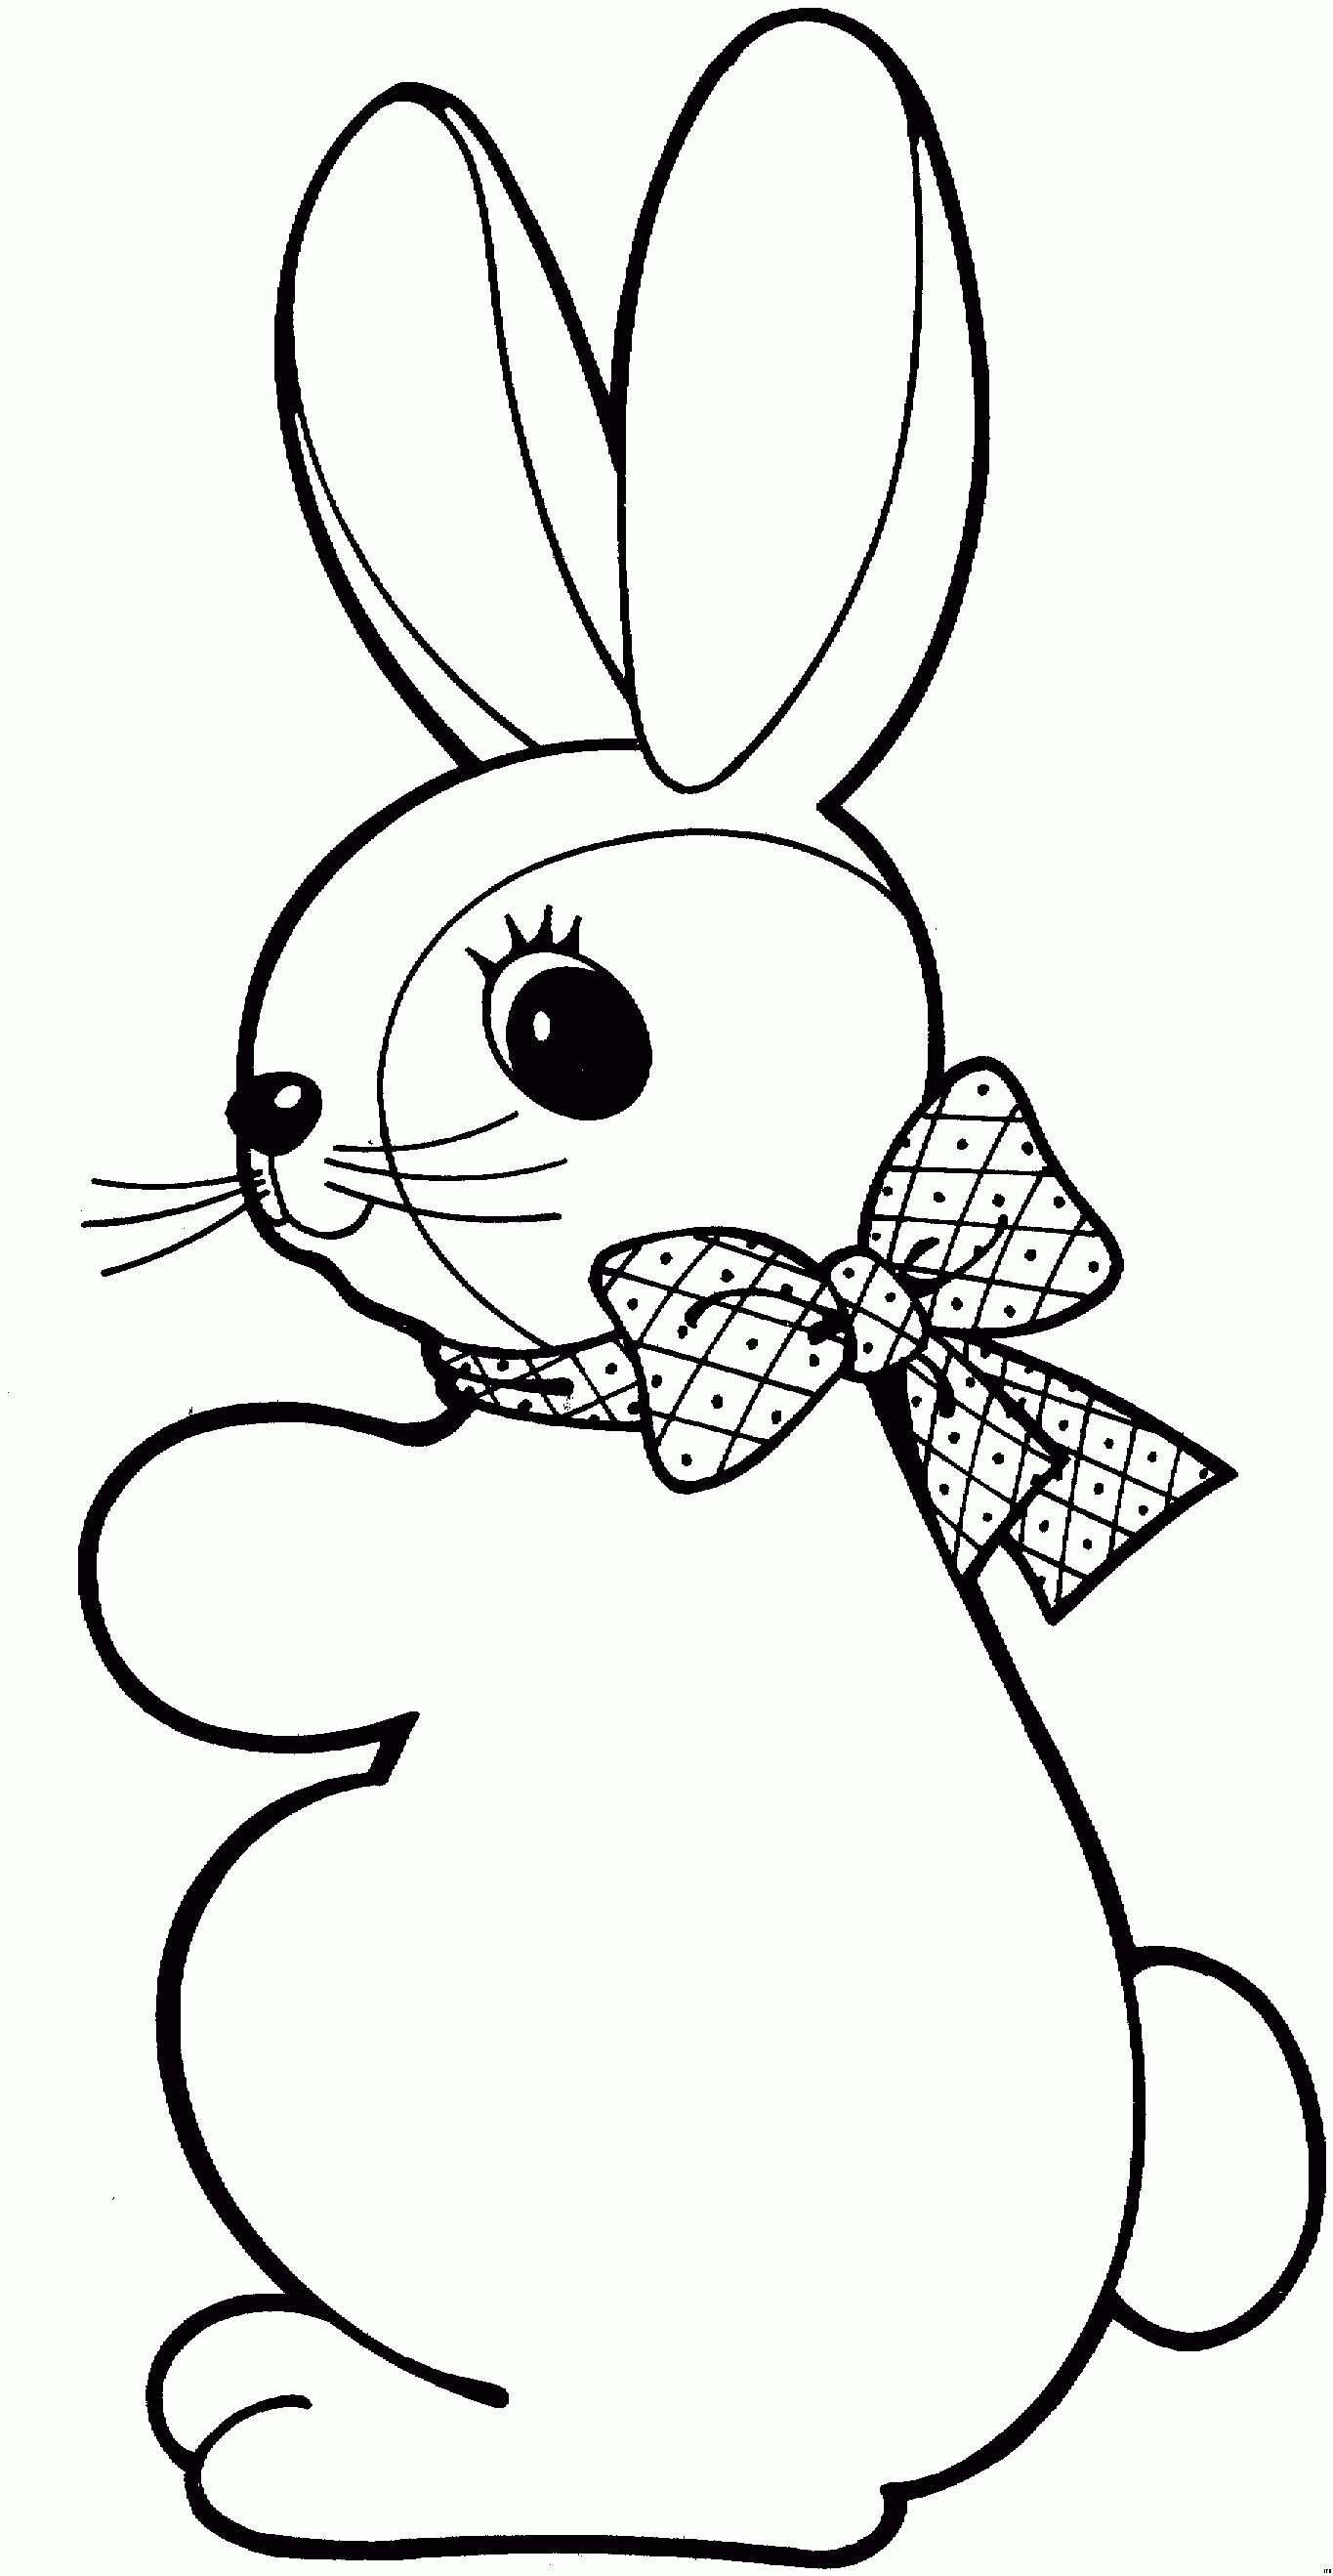 Rabbit Free To Color For Children Rabbit Coloring Pages For Kids